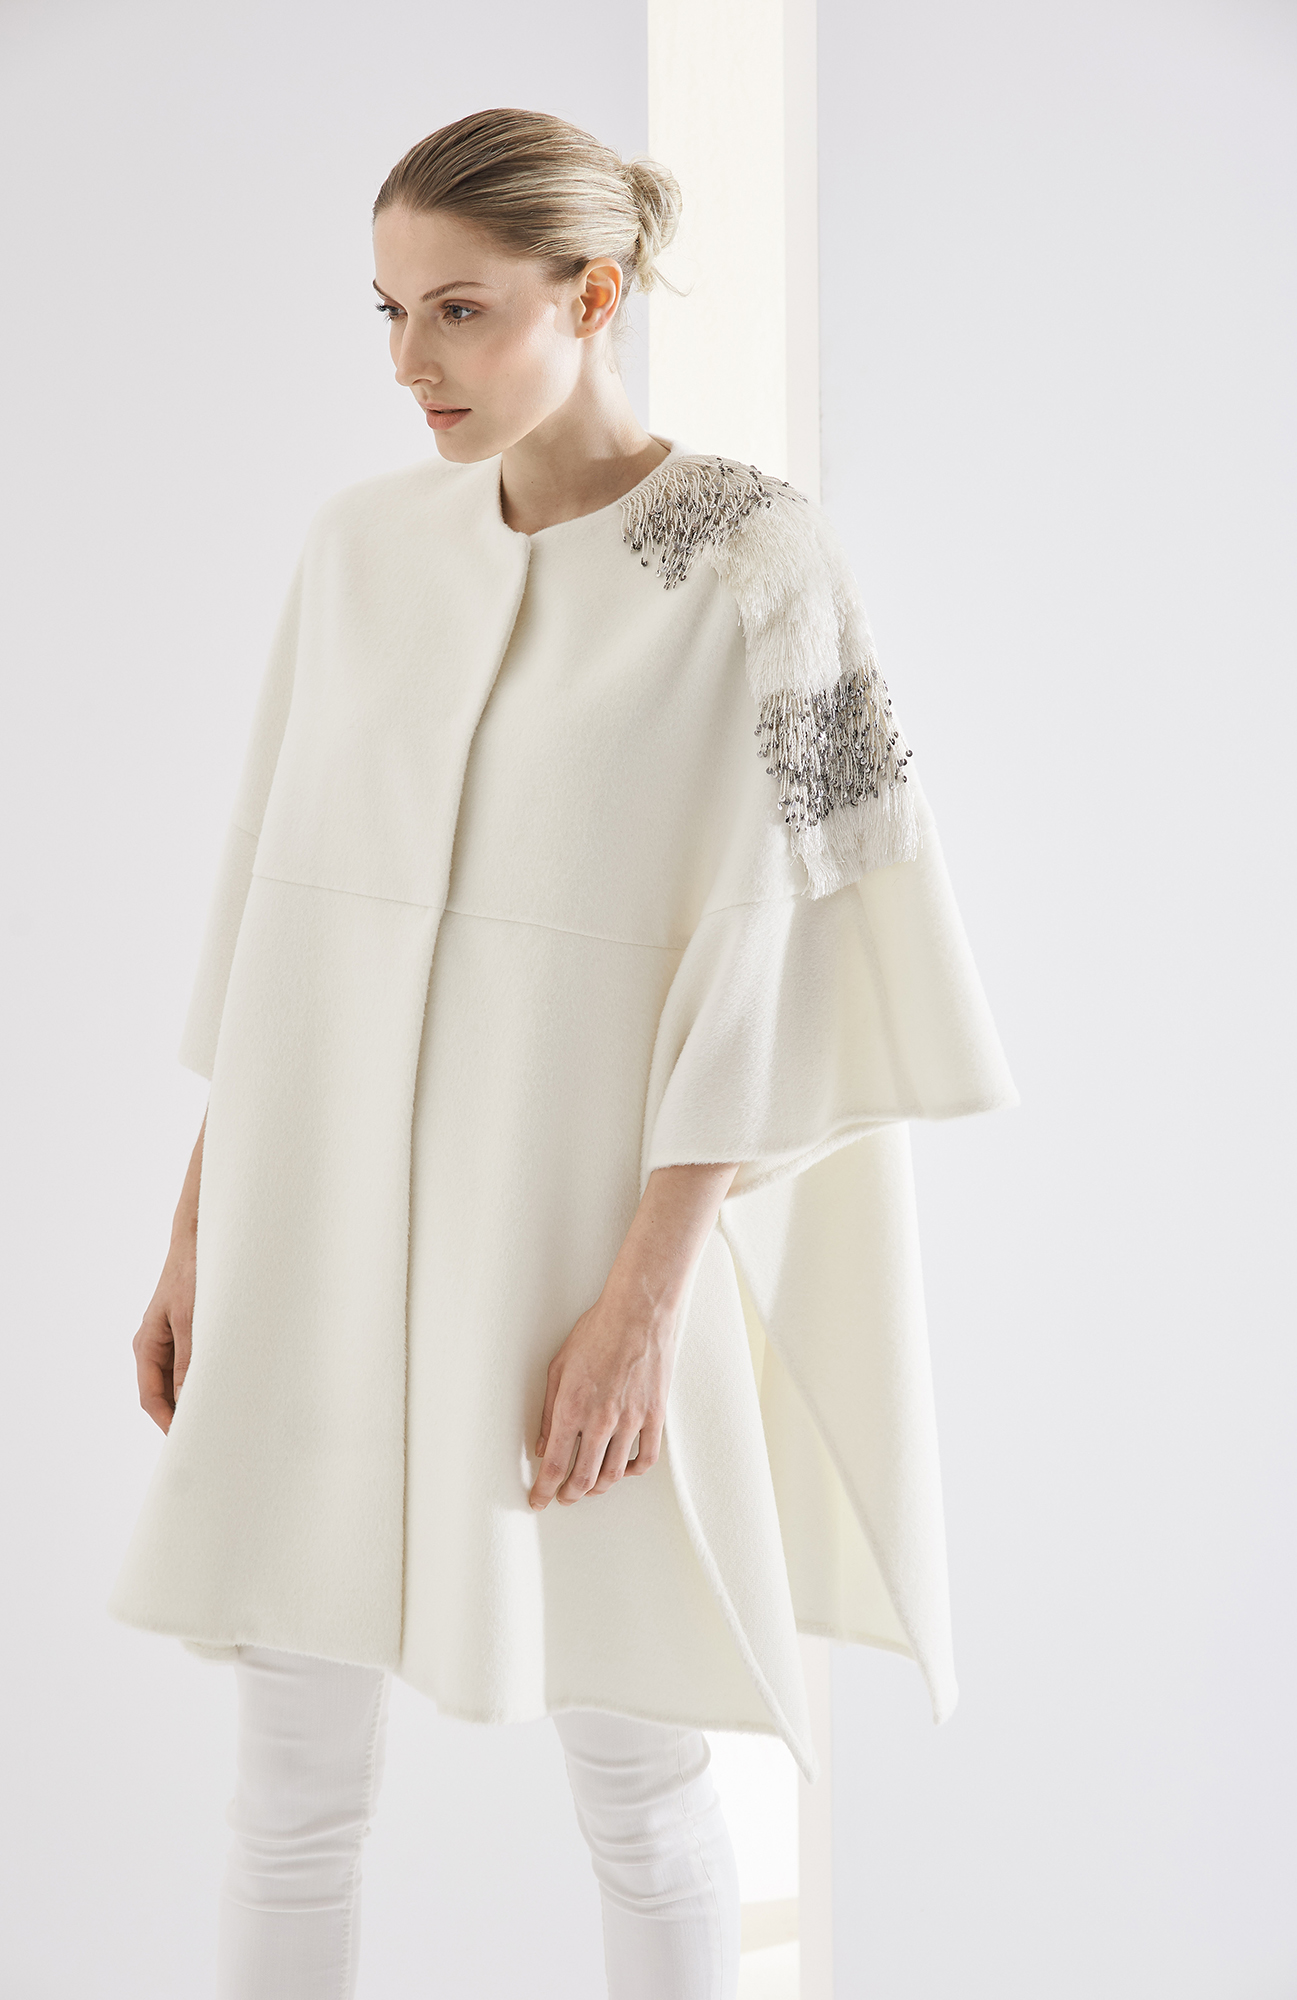 CAPE BERENICE AT-346   Colors:  winter white  only  Sizes: S, M, L